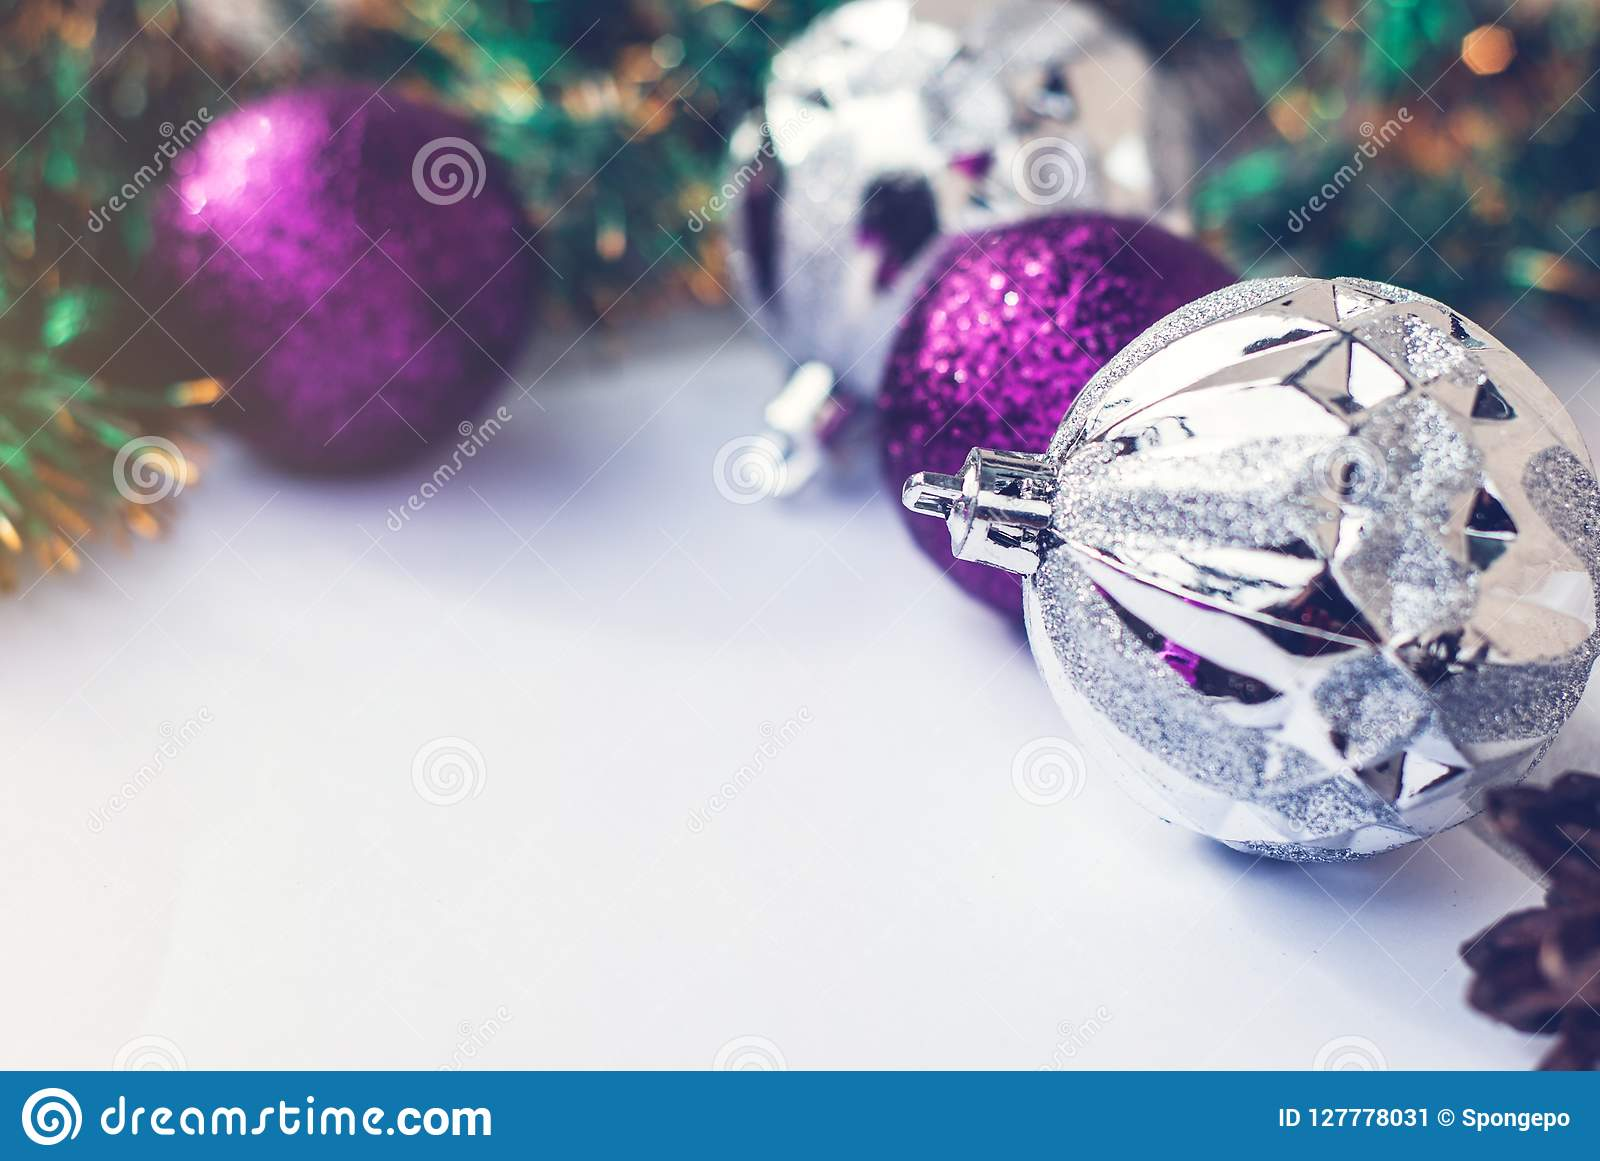 New Year Theme Christmas Tree Purple And Silver Decorations Balls On White Retro Wood Background Stock Image Image Of Ornamental Happy 127778031